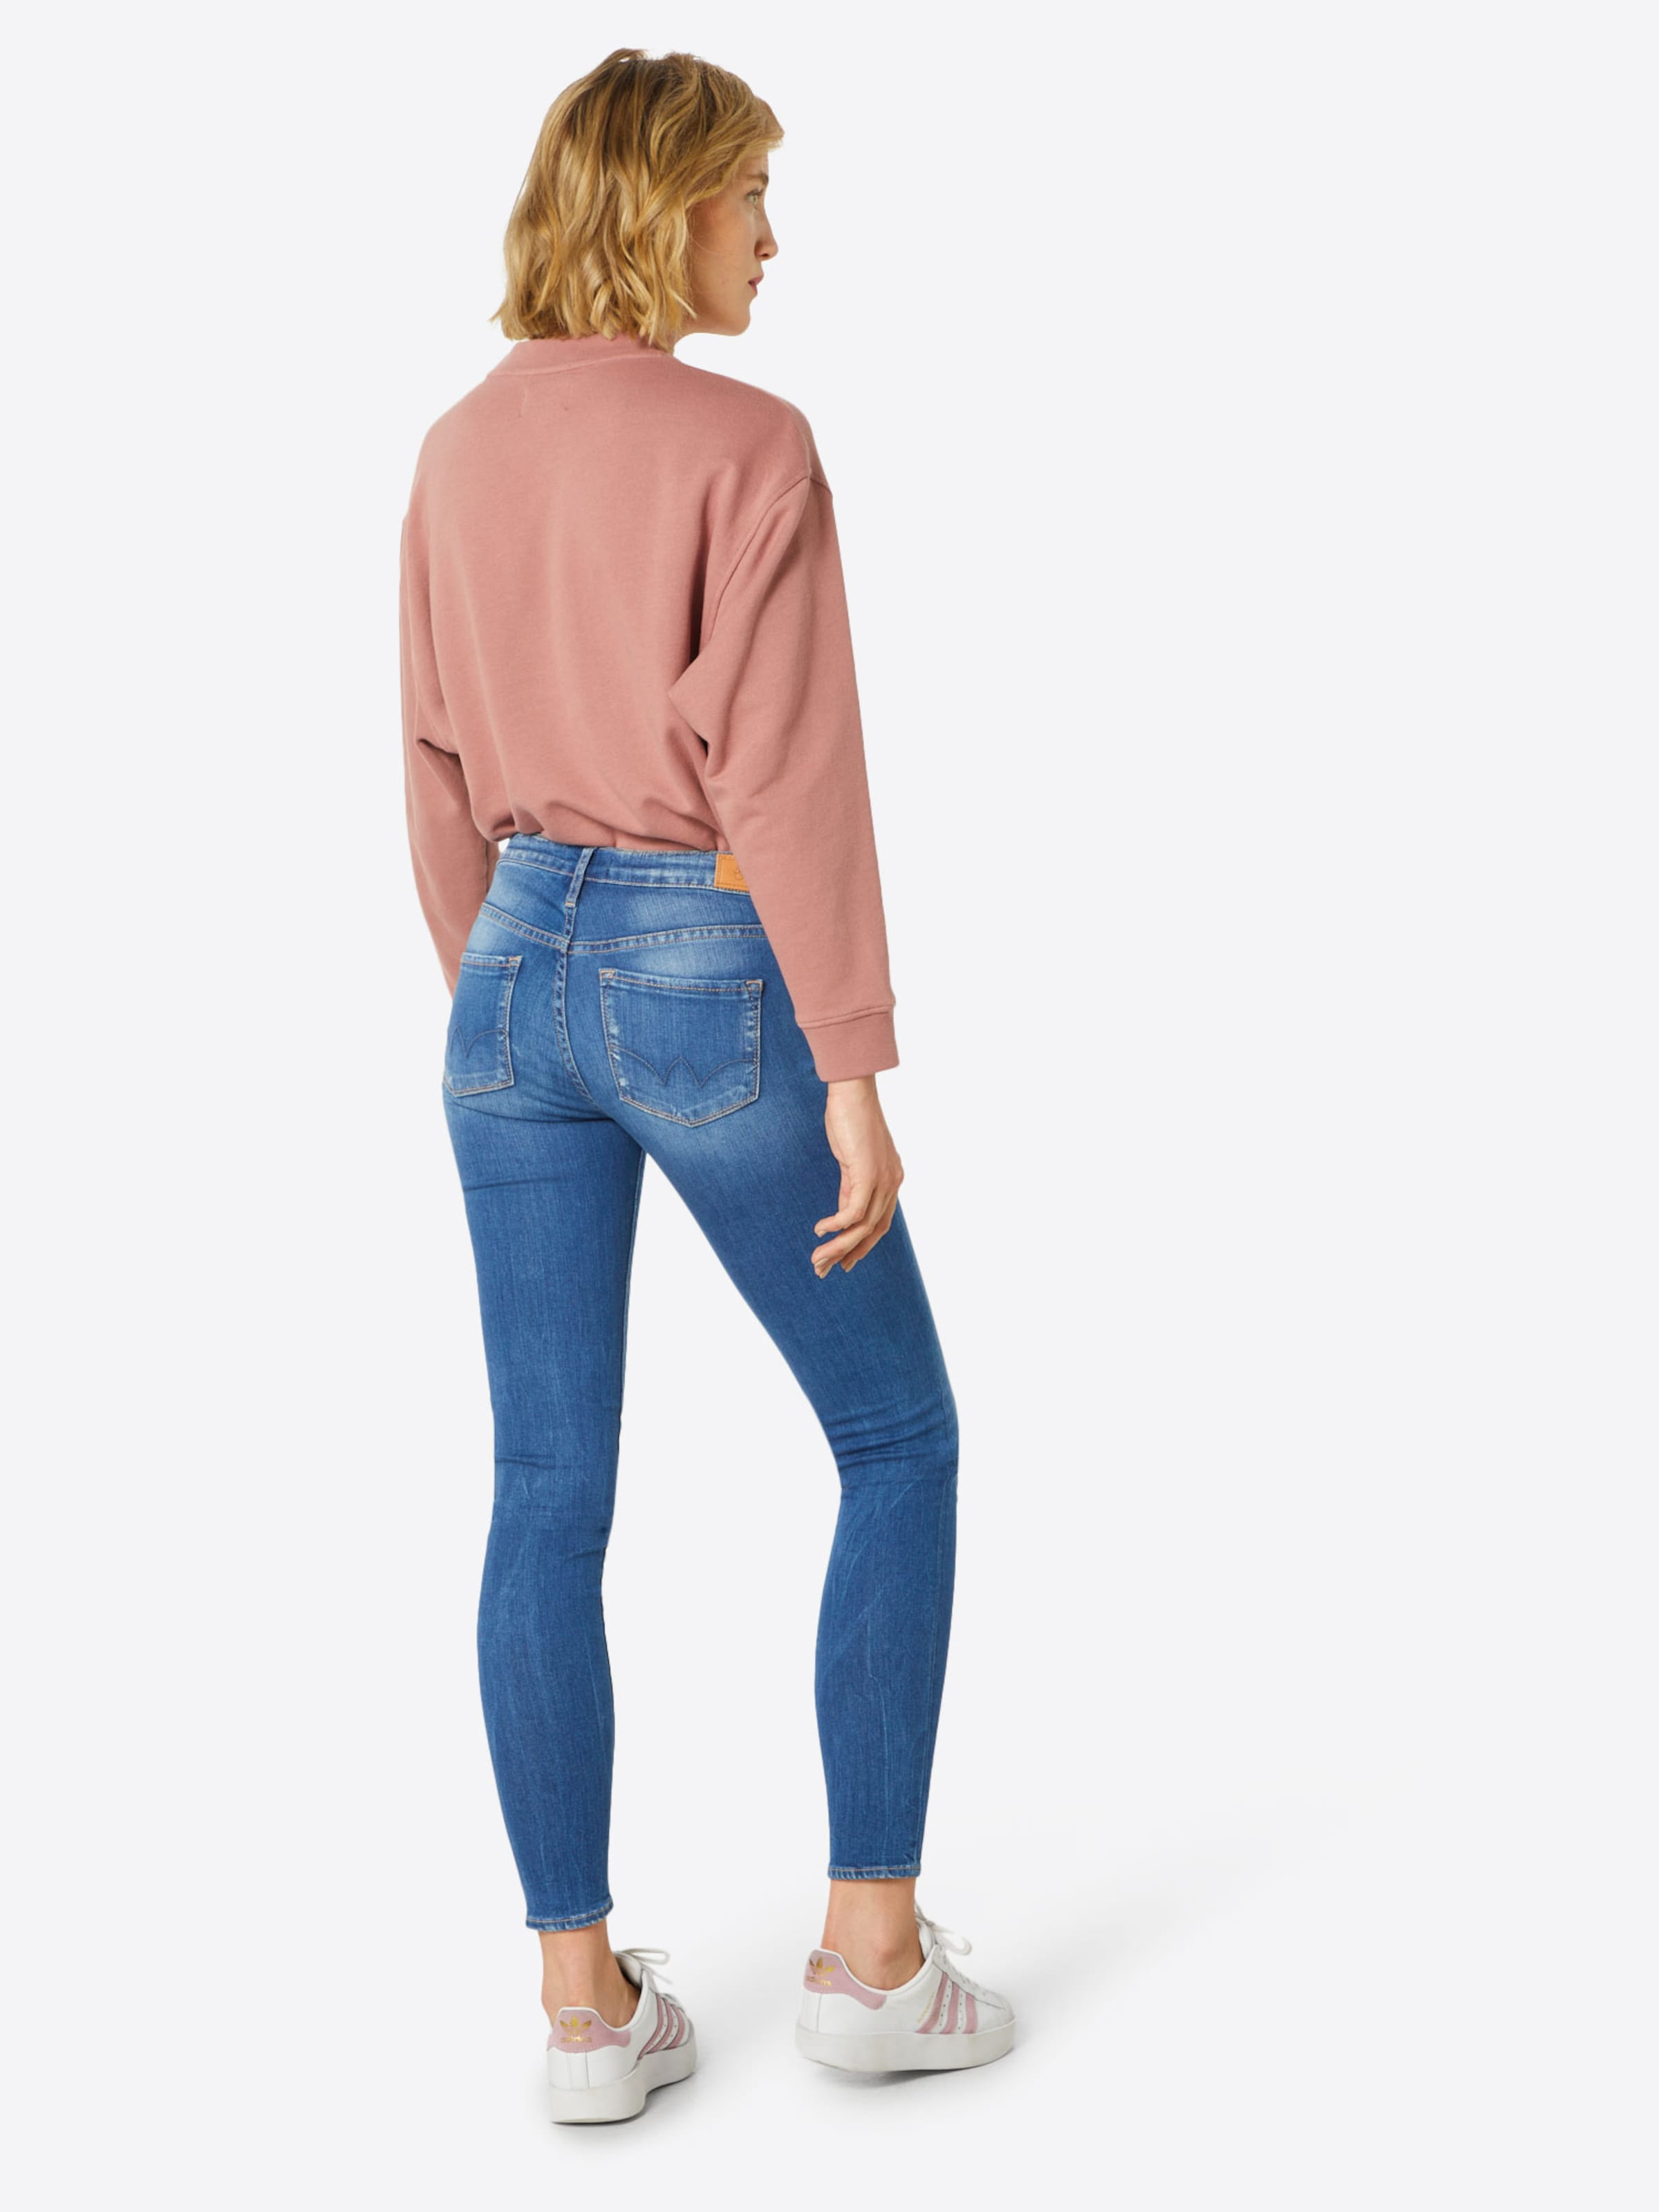 Cerises Denim 'jf Blue Temps Des Le Jeans In Power3' 0wPX8Onk